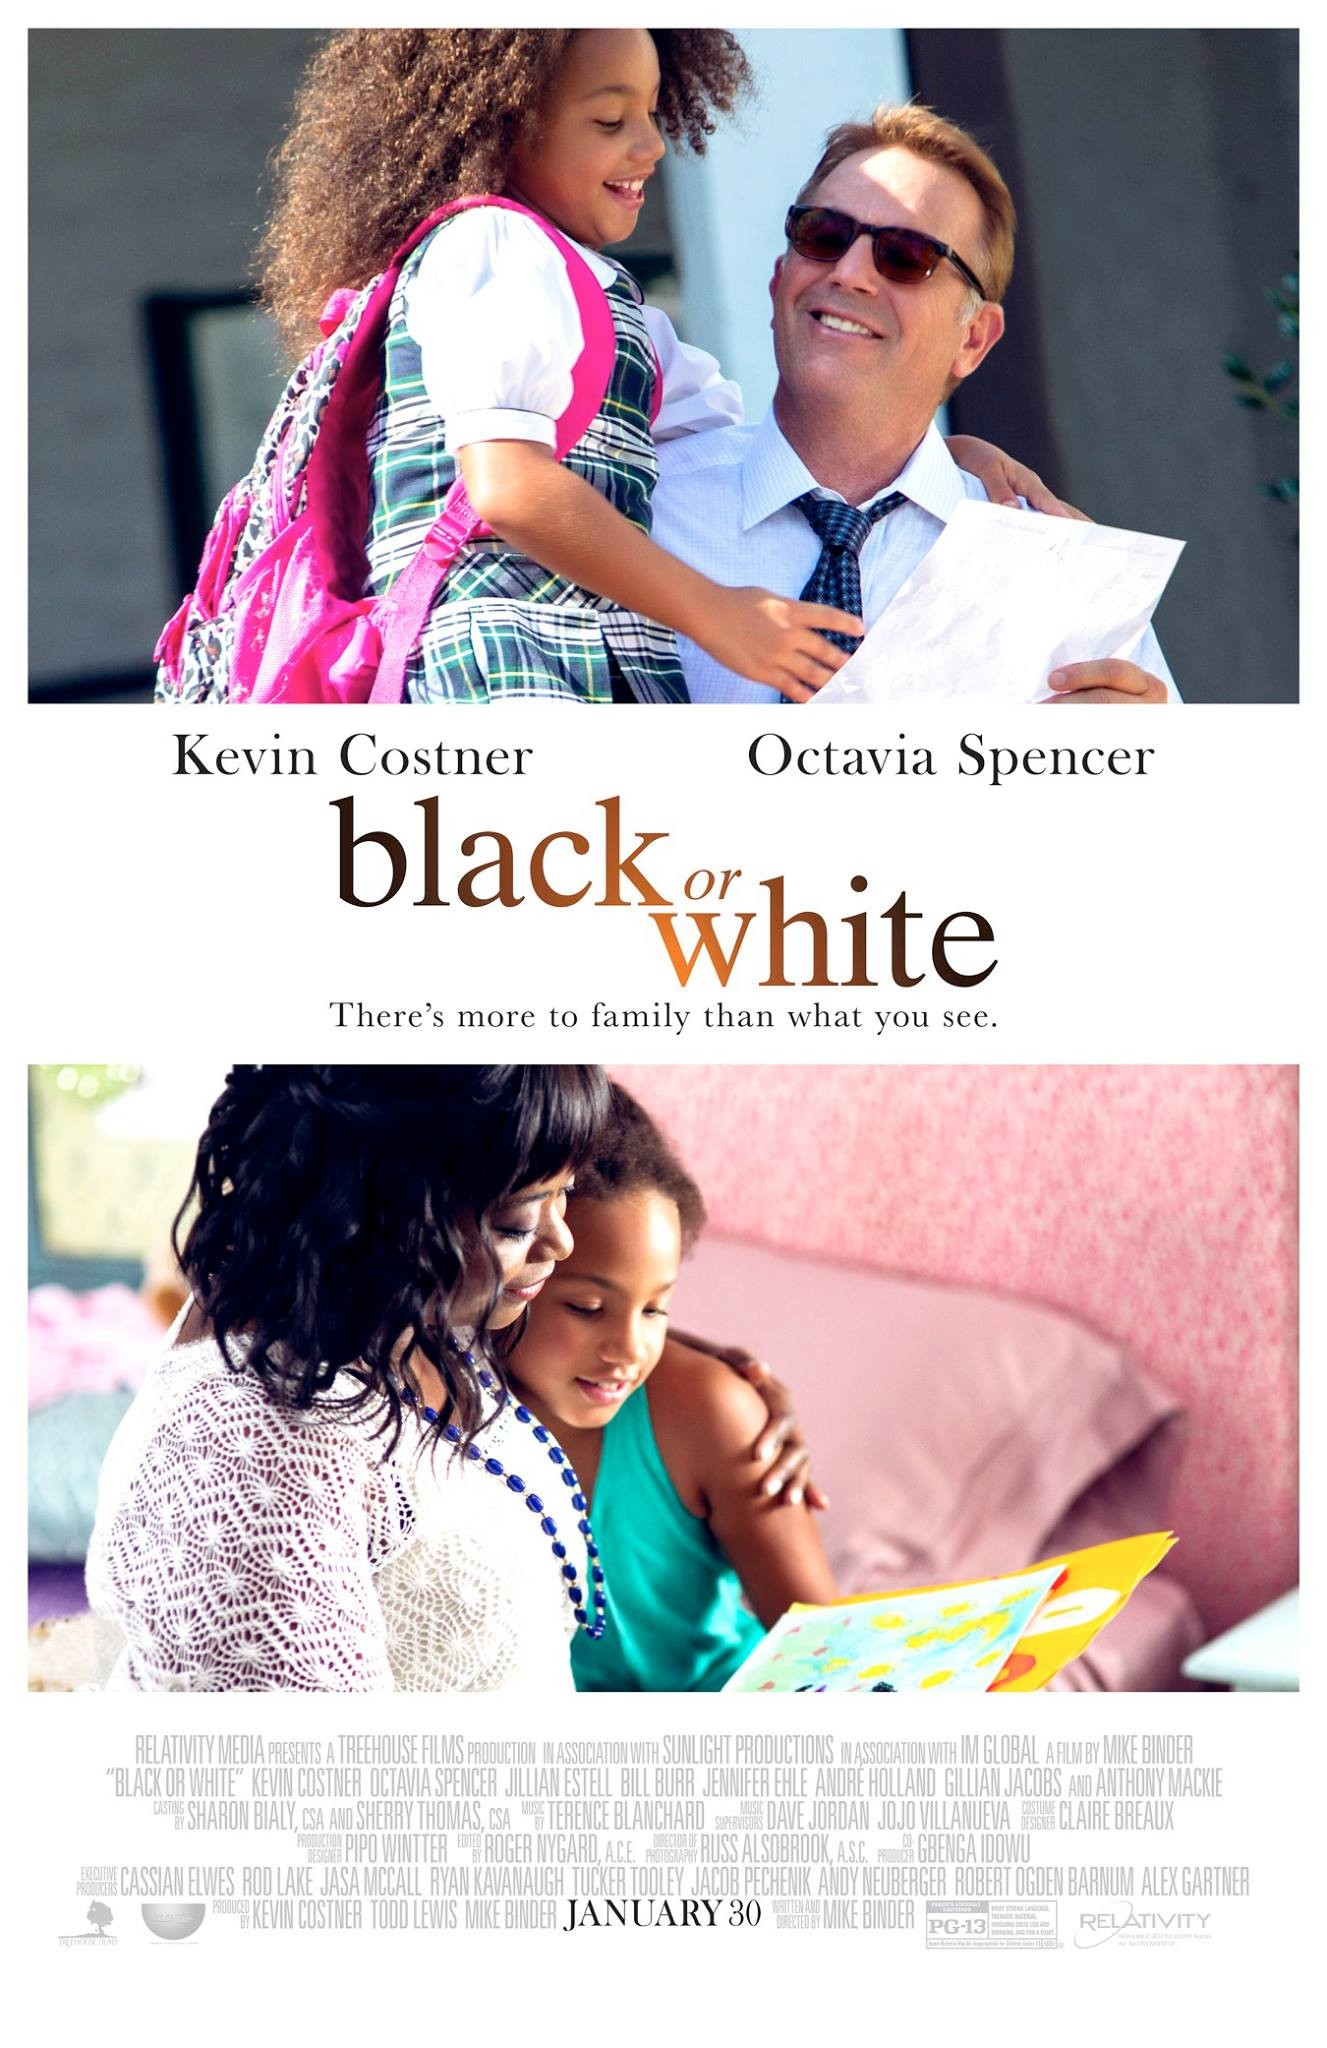 Black or White-Official Poster Banner XXLG-08DEZEMBRO2014-00